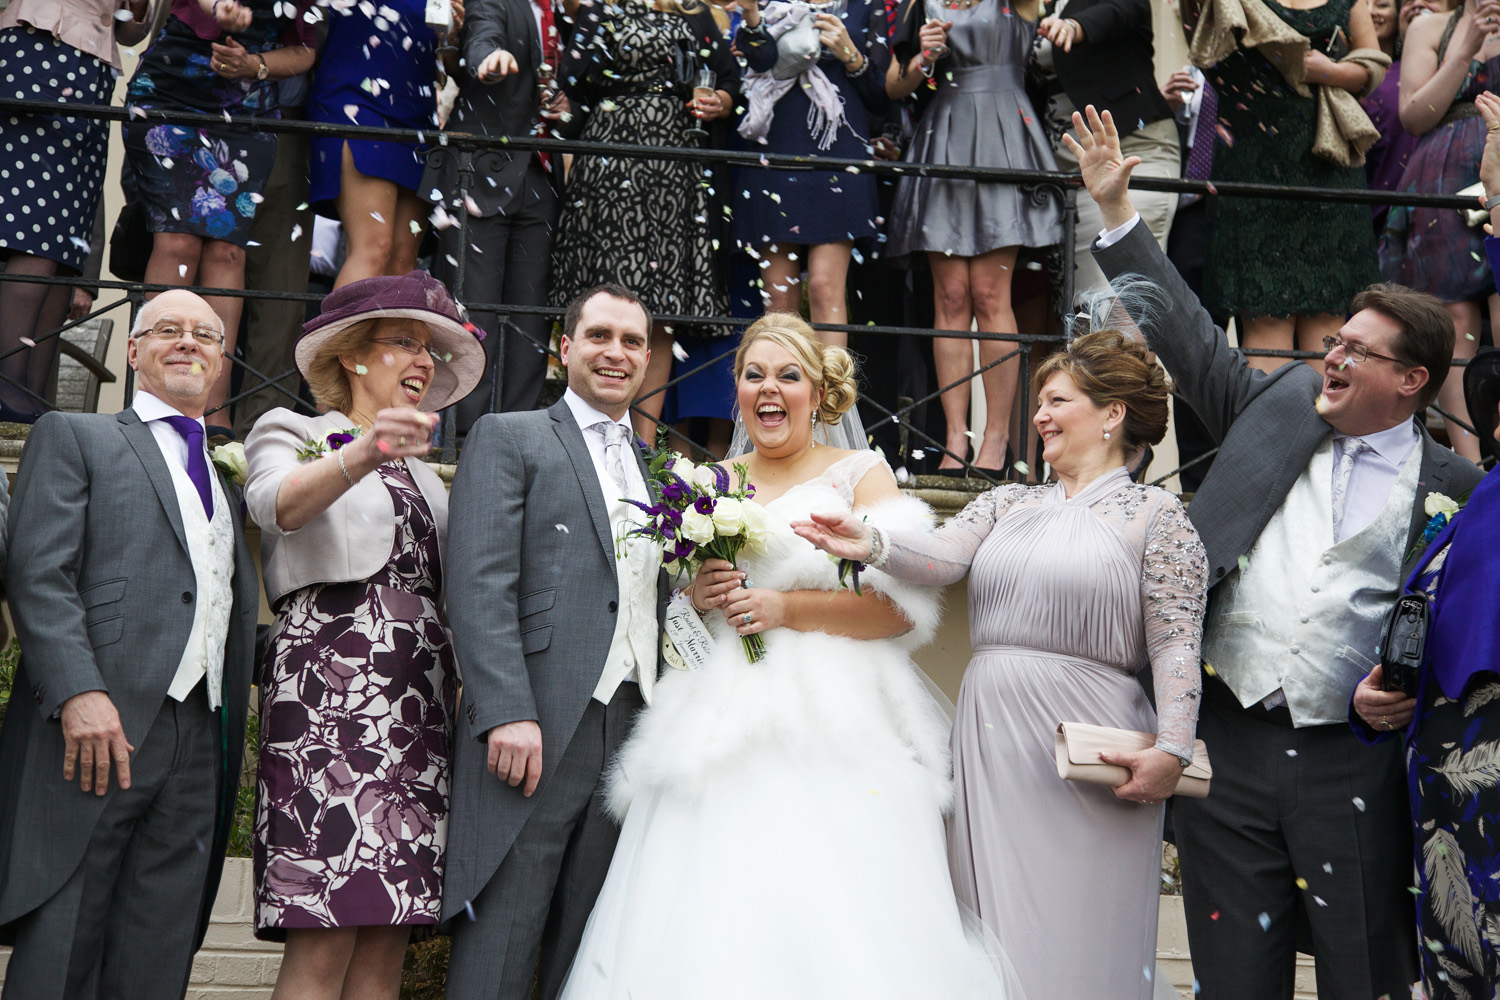 Taplow_House_Hotel_Wedding_Photographer_Maidenhead_044.jpg